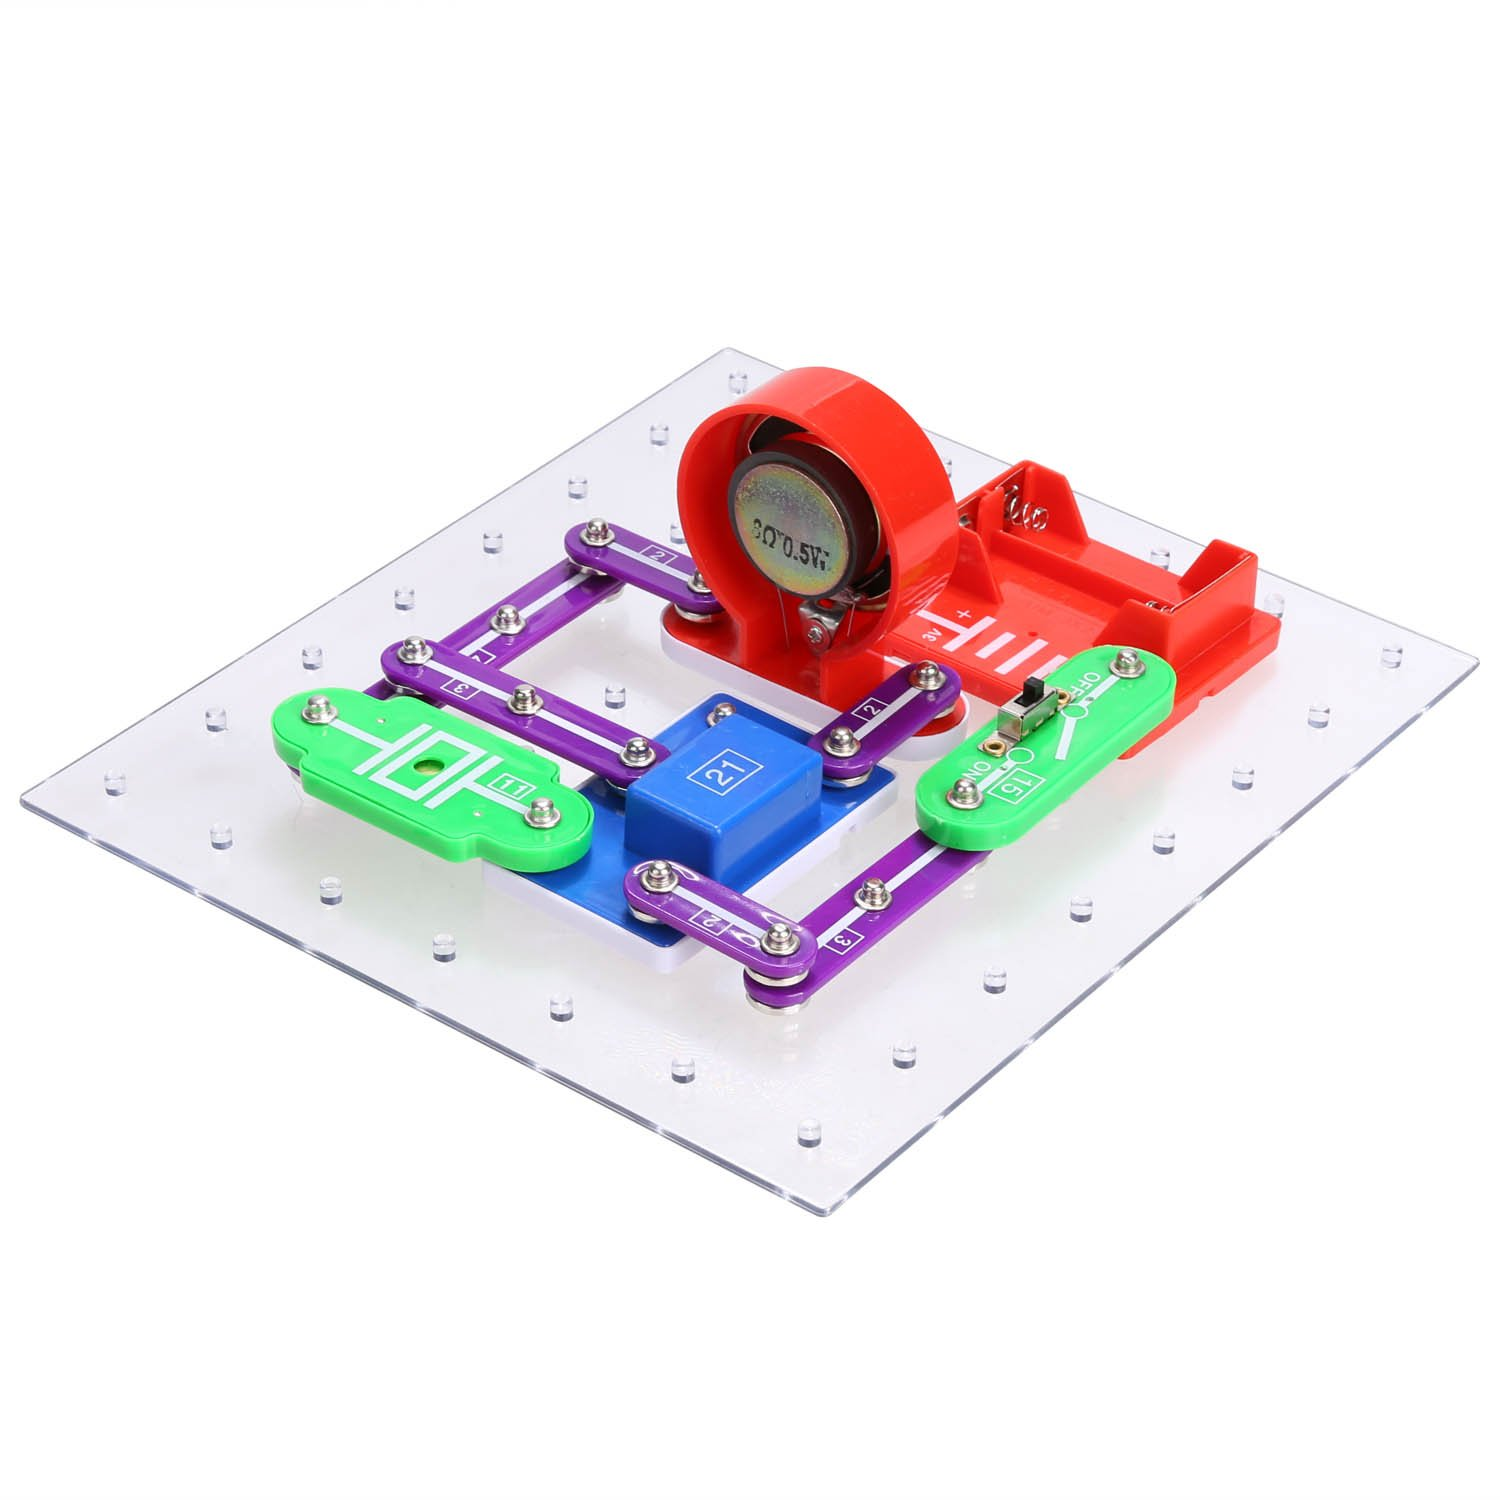 Smibie 335 Diy Circuit Experiments Toy Electronic Discovery Snap Circuits Motion Scm165 Educational Science Kit For Kids Toys Amazon Canada